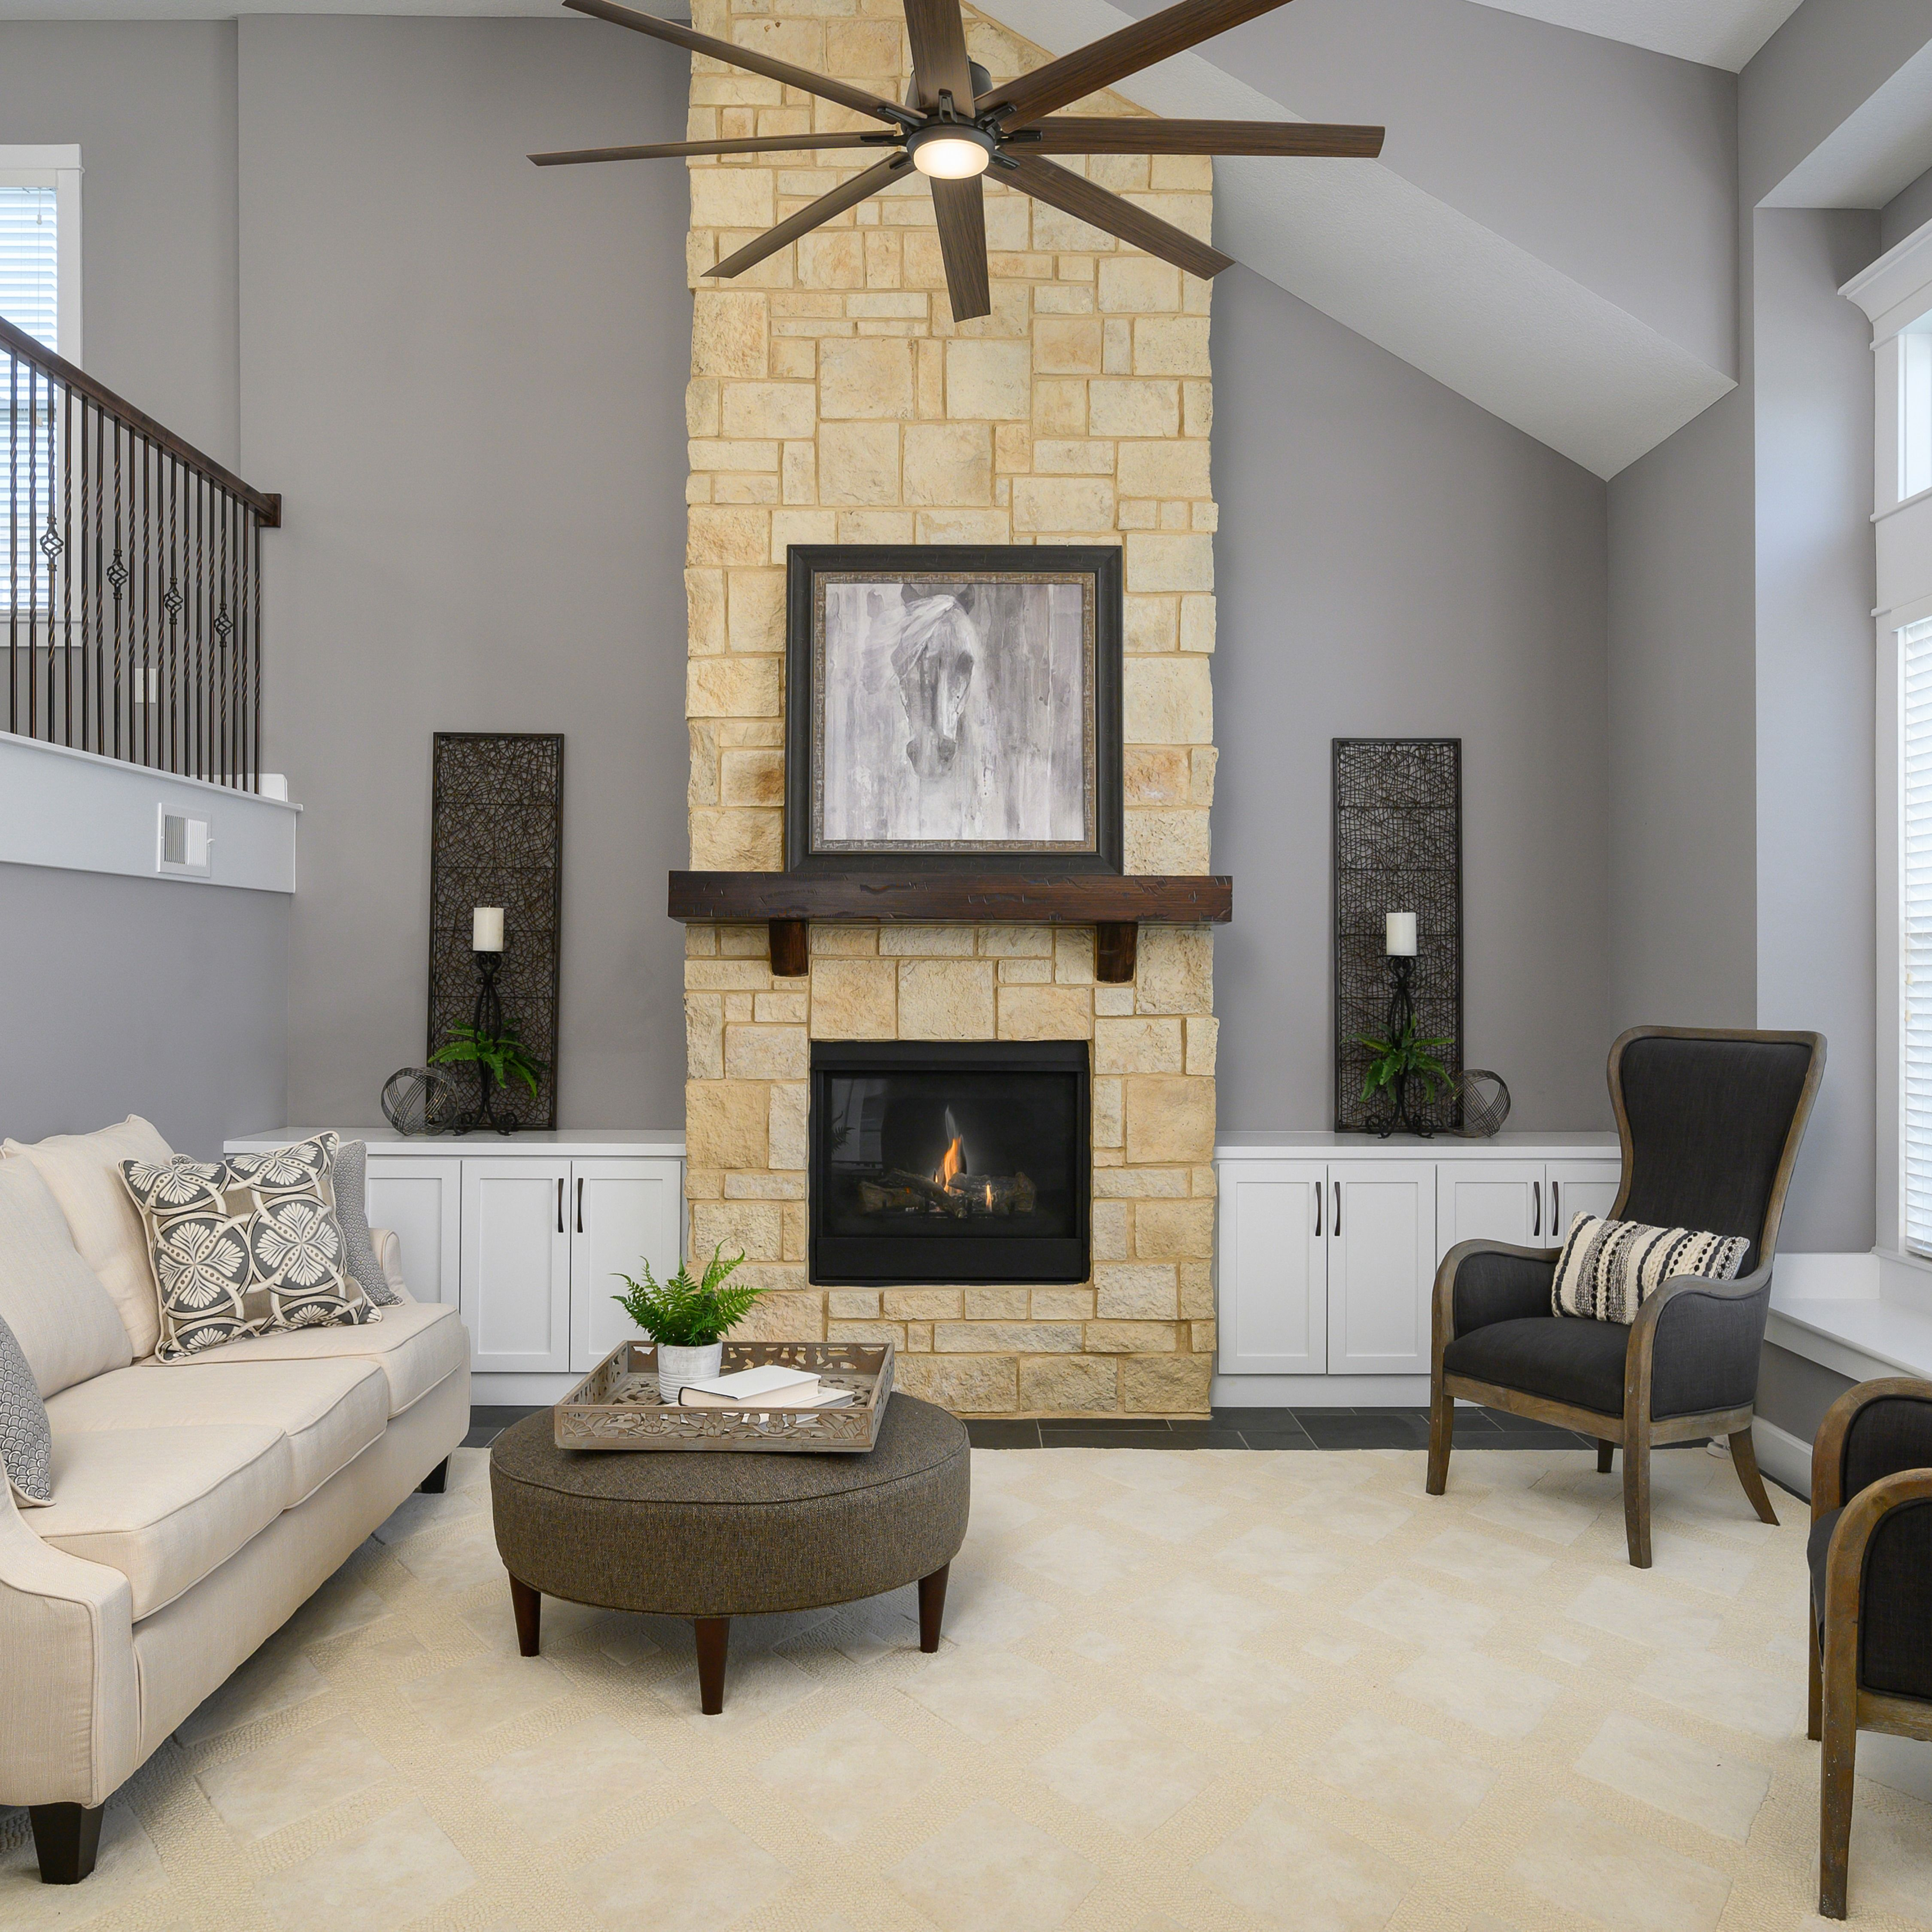 Attractive Interiors Home Staging: Beautiful Living Room Staged By Stylish Staging & Design